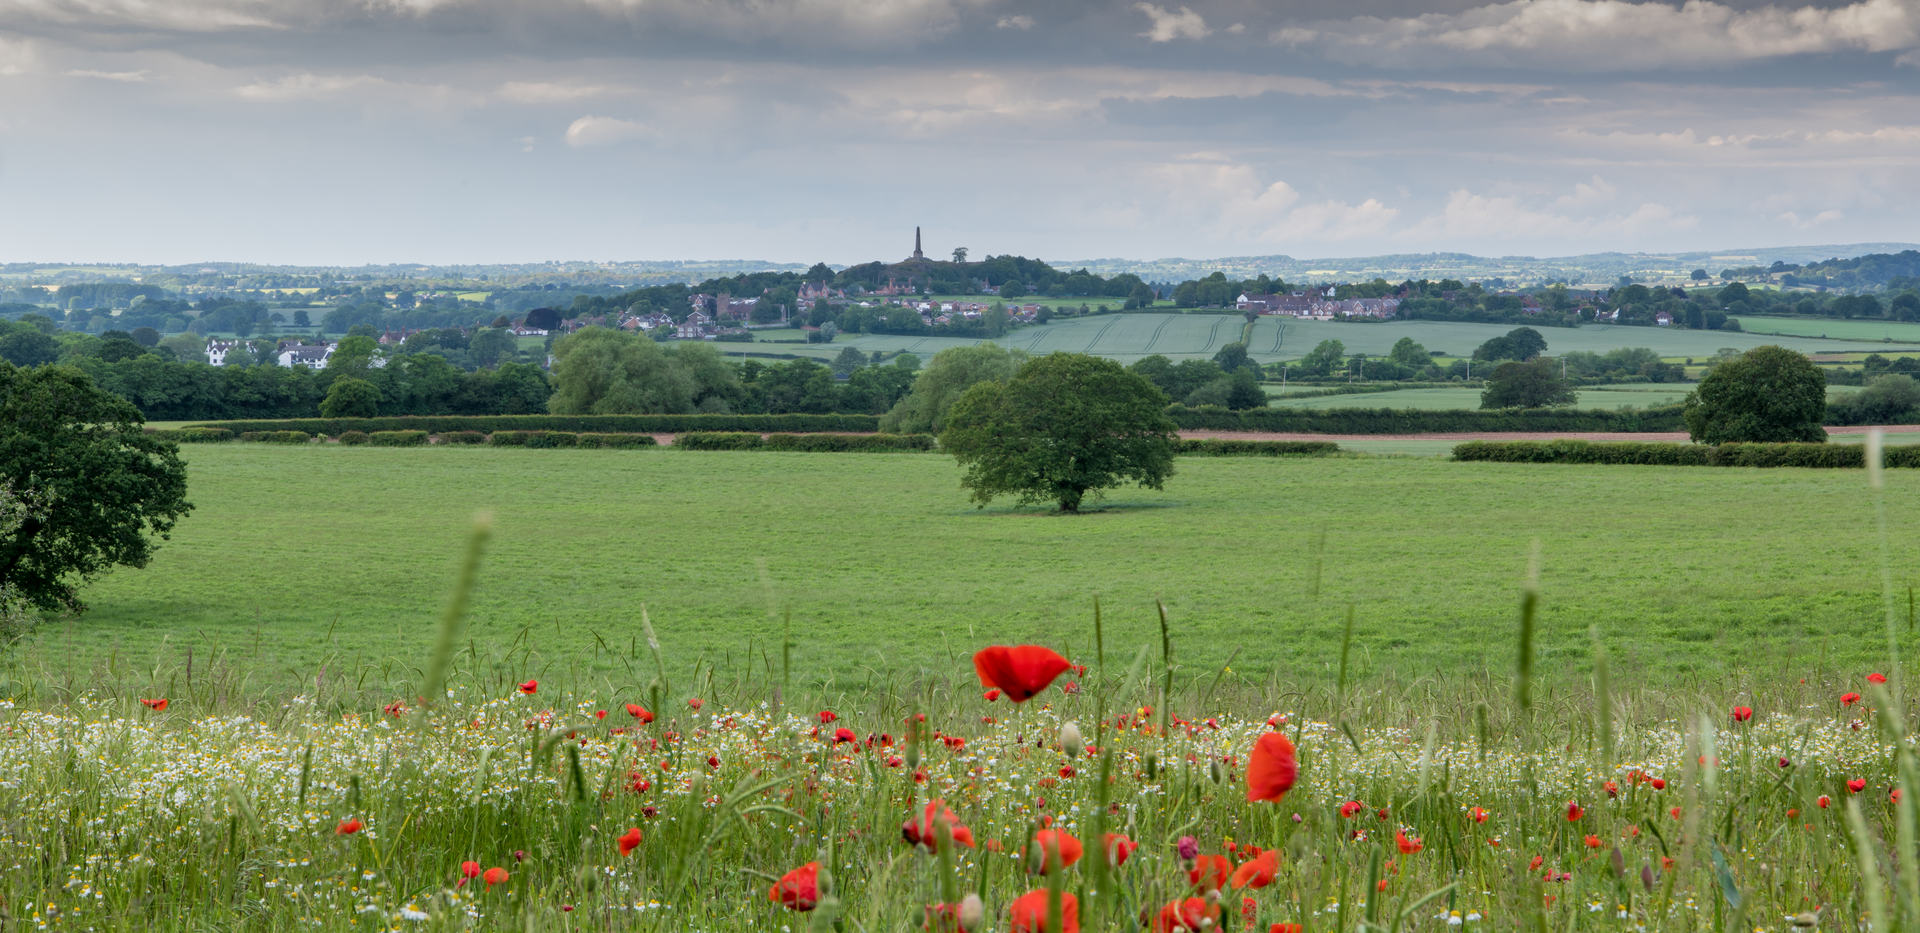 (c) Rob Hall: Lilleshall Monument (highly commended)